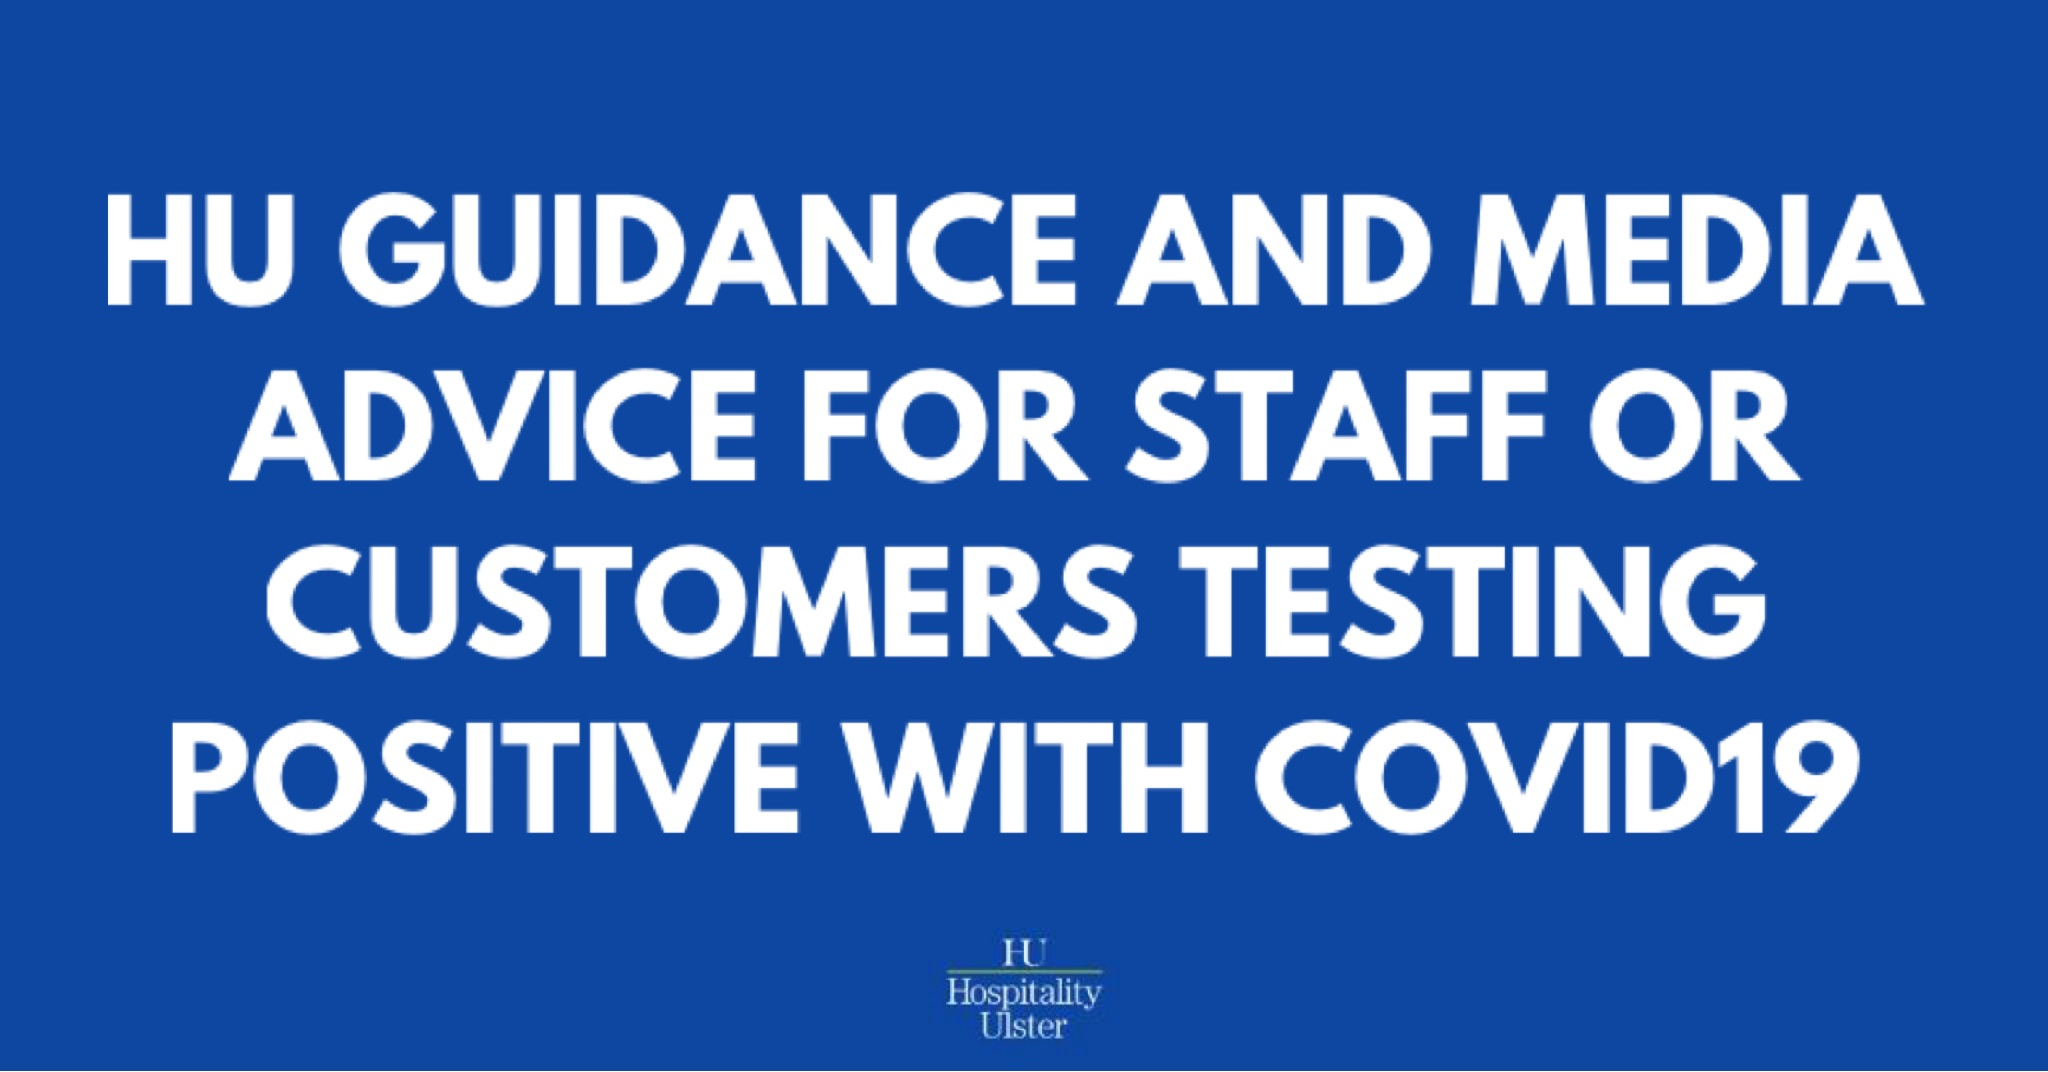 HU GUIDANCE AND MEDIA ADVICE FOR STAFF OR CUSTOMERS TESTING POSITIVE WITH COVID19